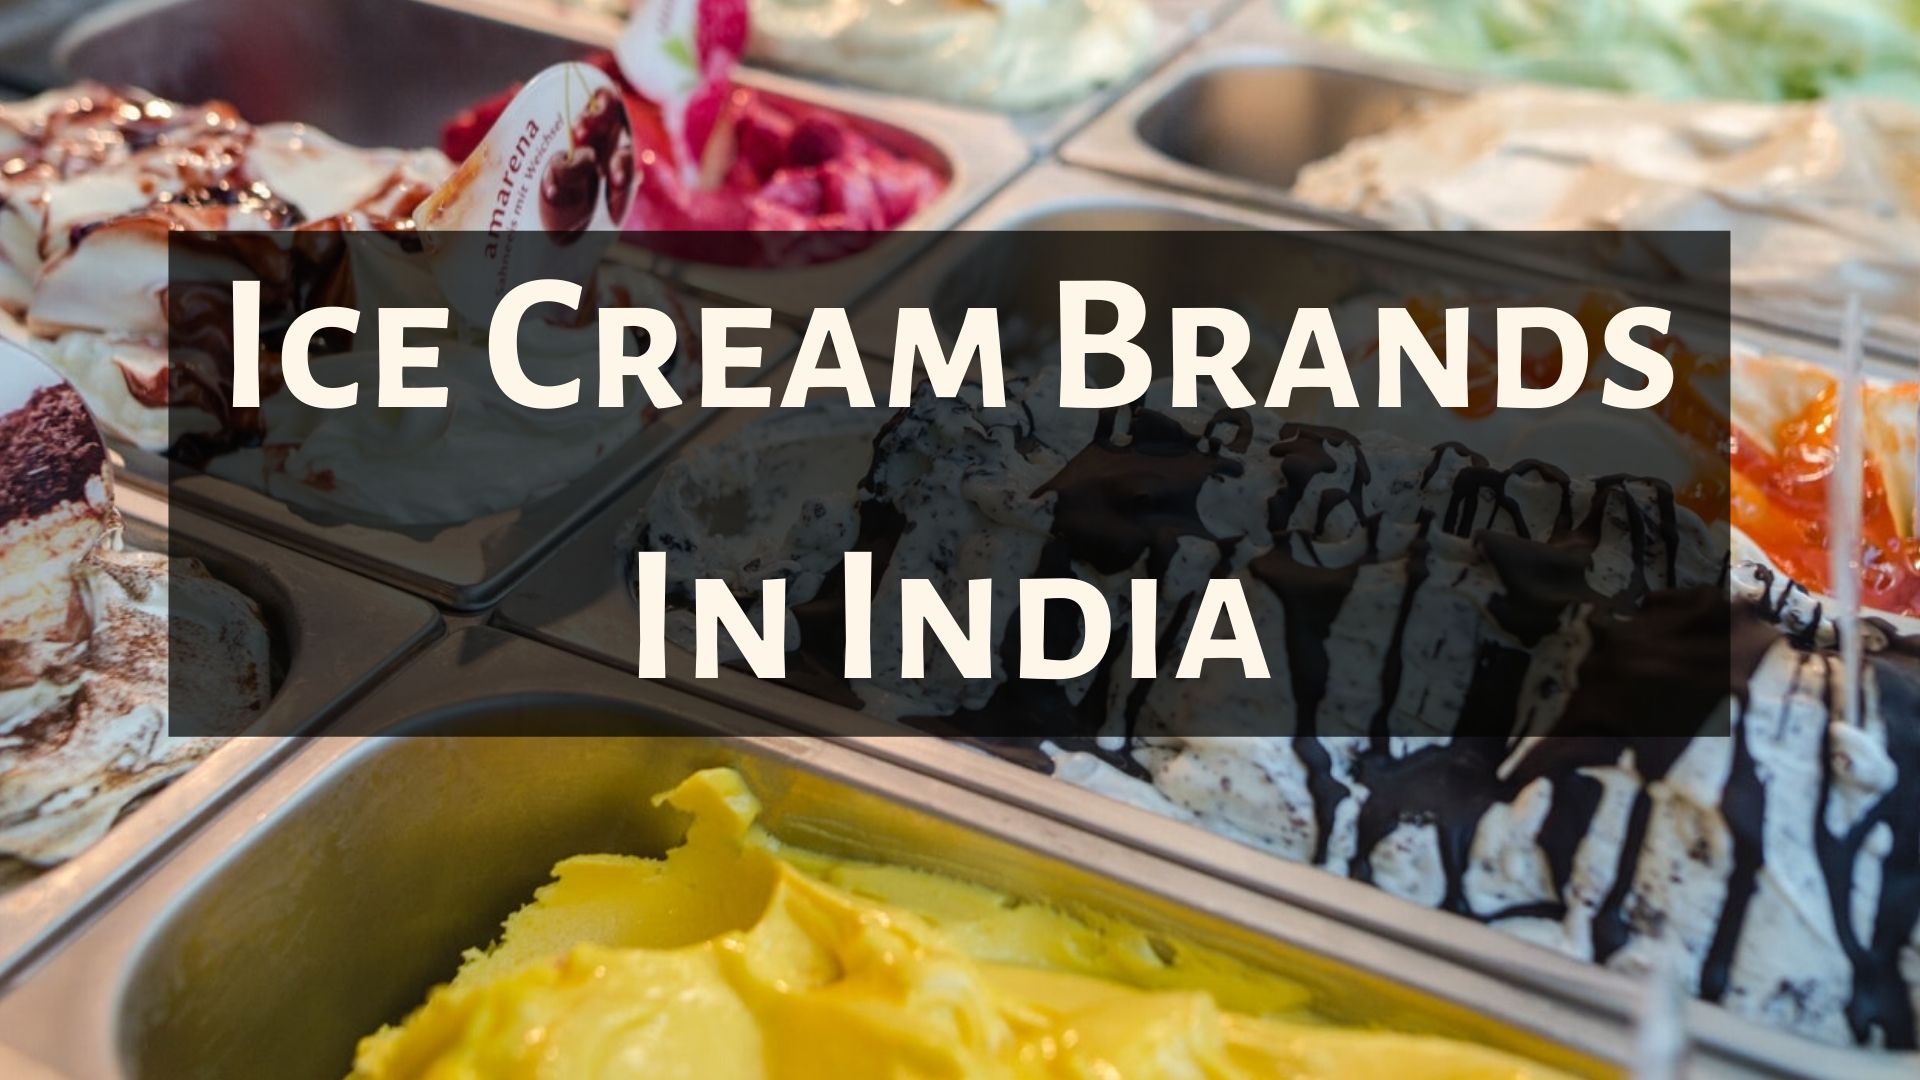 Ice Cream Brands In India